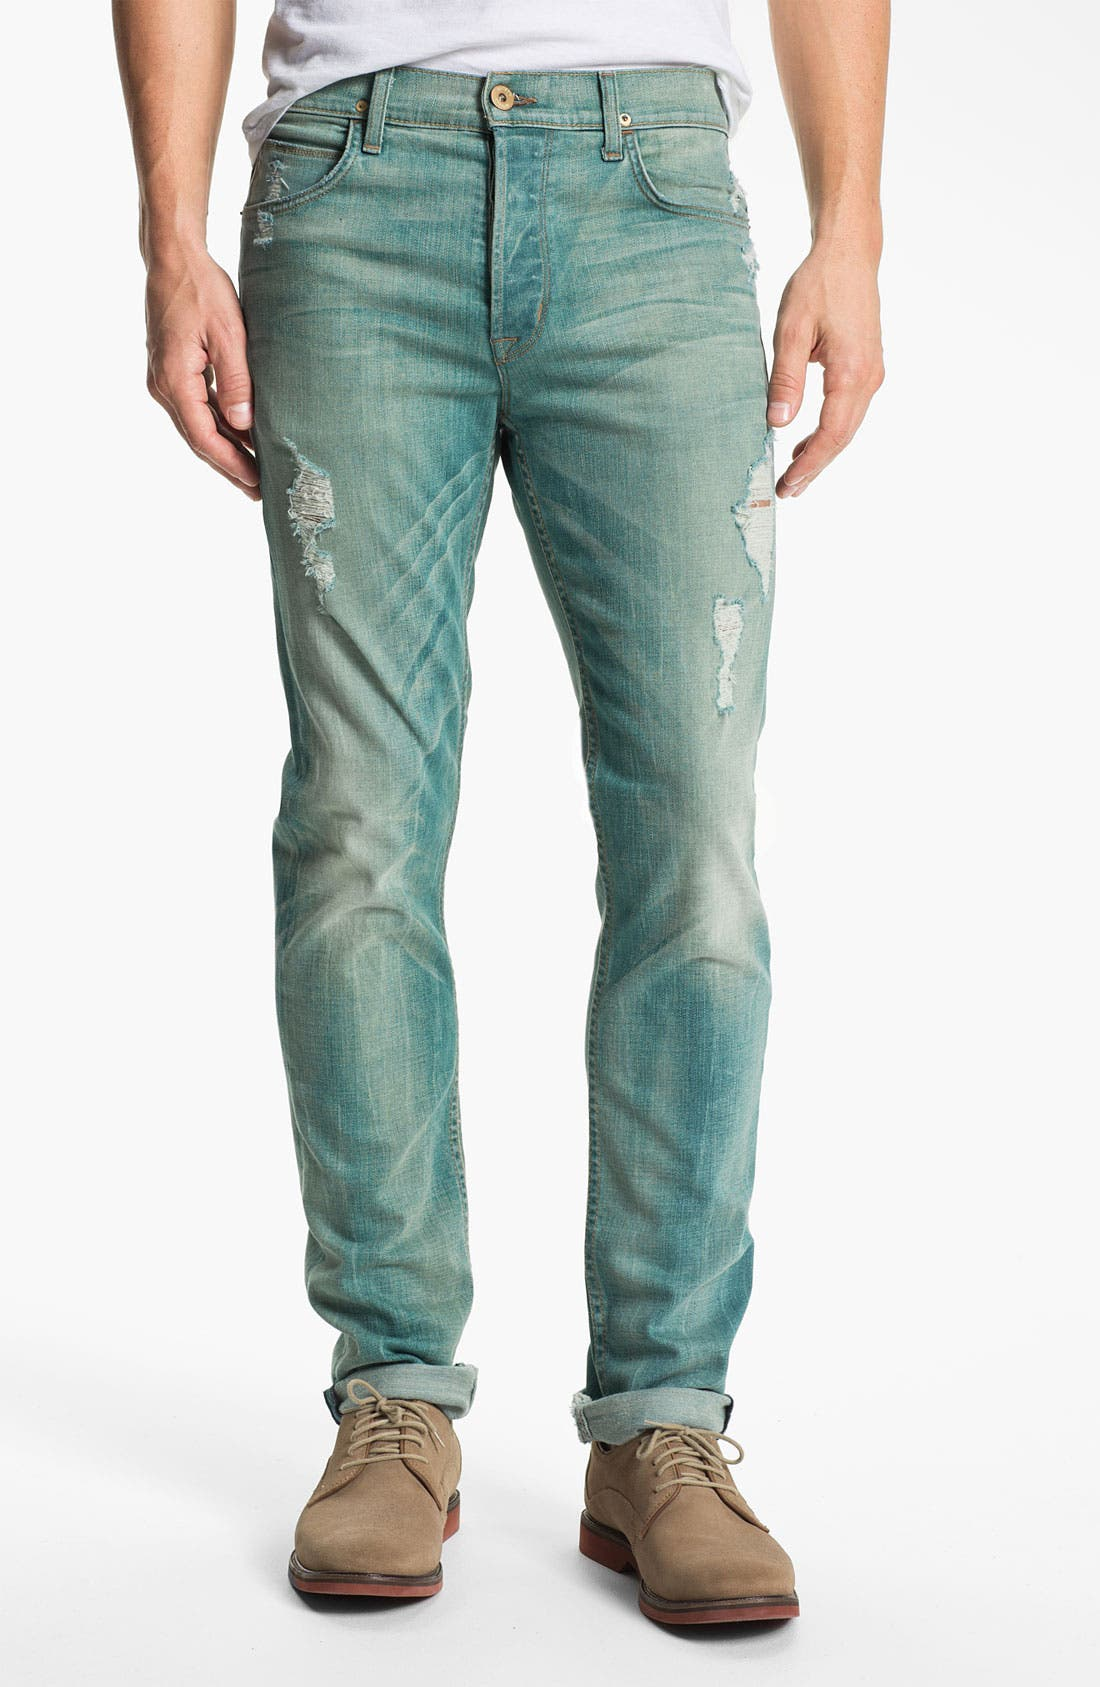 Alternate Image 1 Selected - Hudson Jeans 'Dandy' Slouchy Straight Leg Jeans (Rooster)